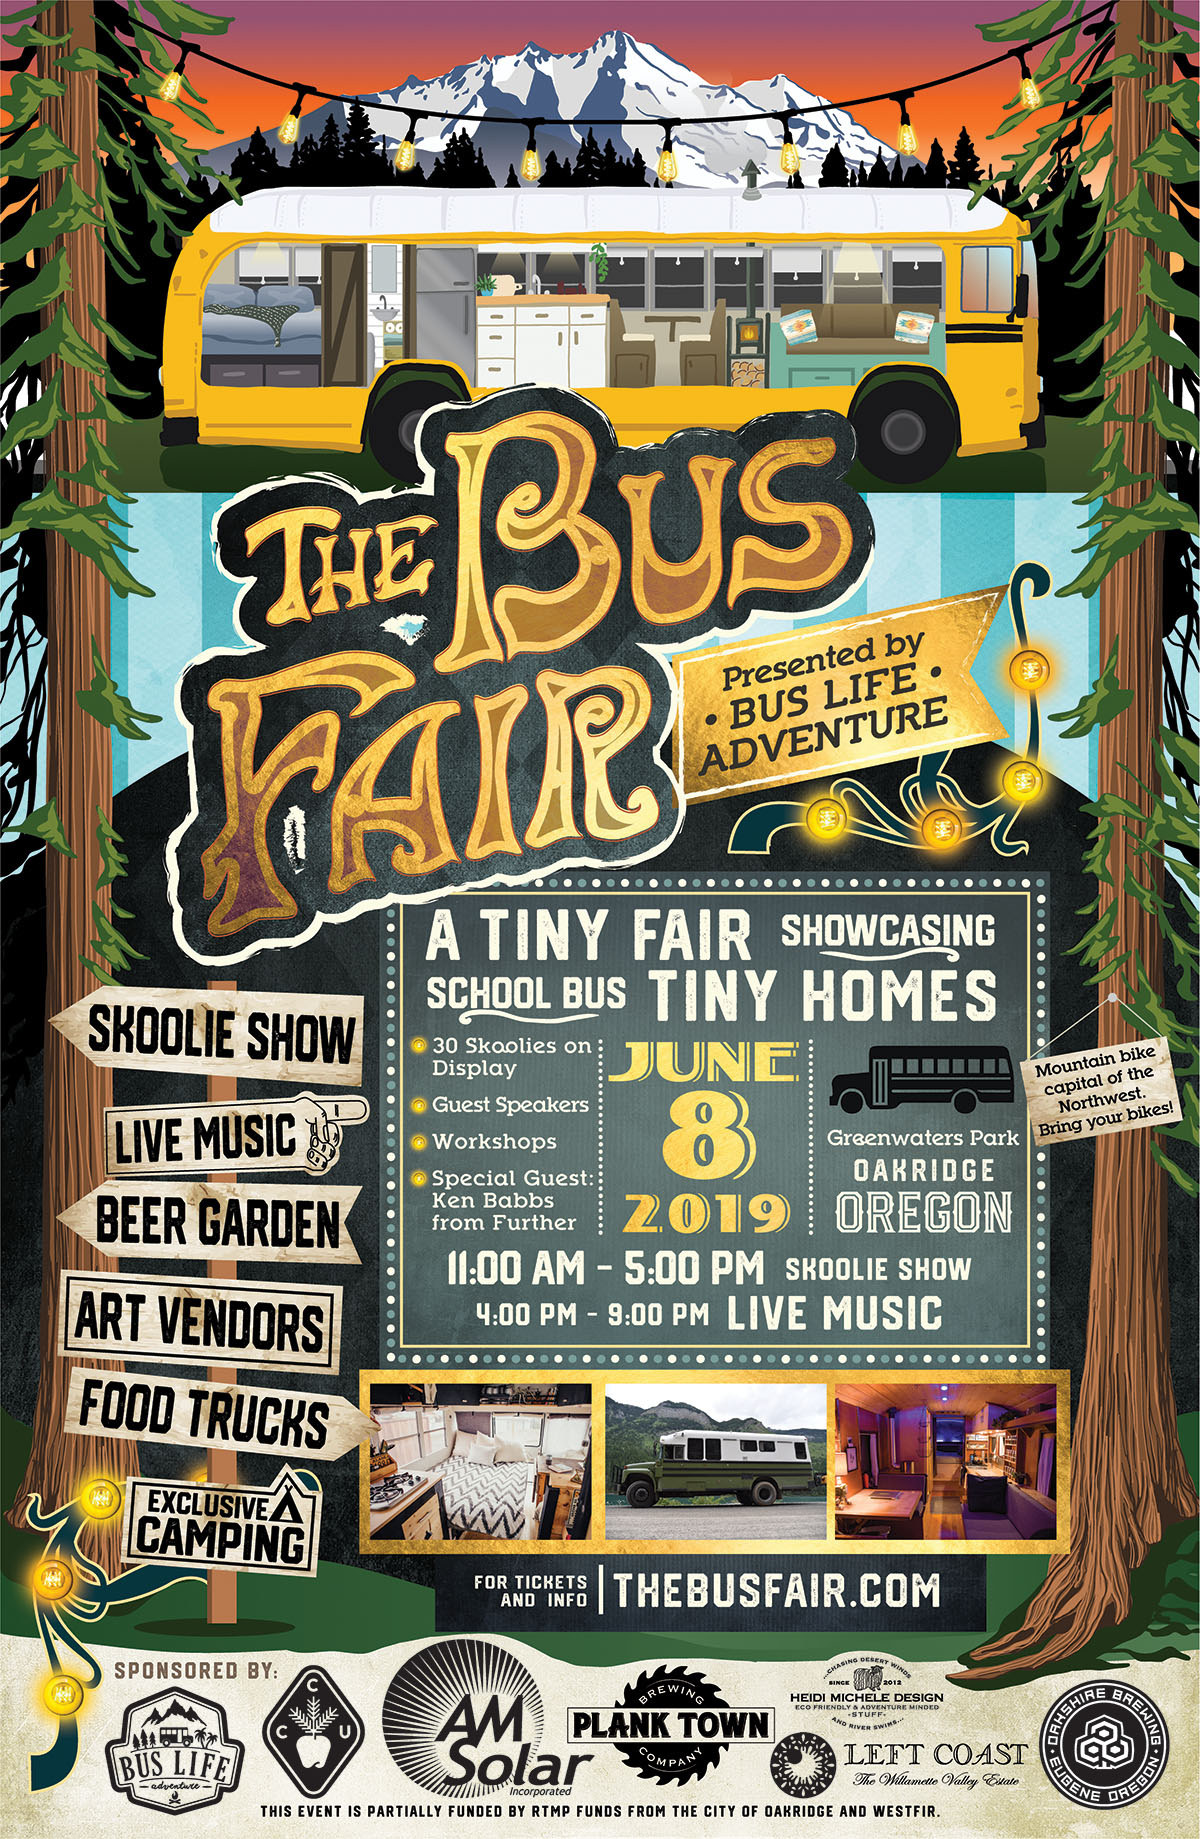 Bus Fair FINAL MAY 2018 11x17 SMALL.jpg